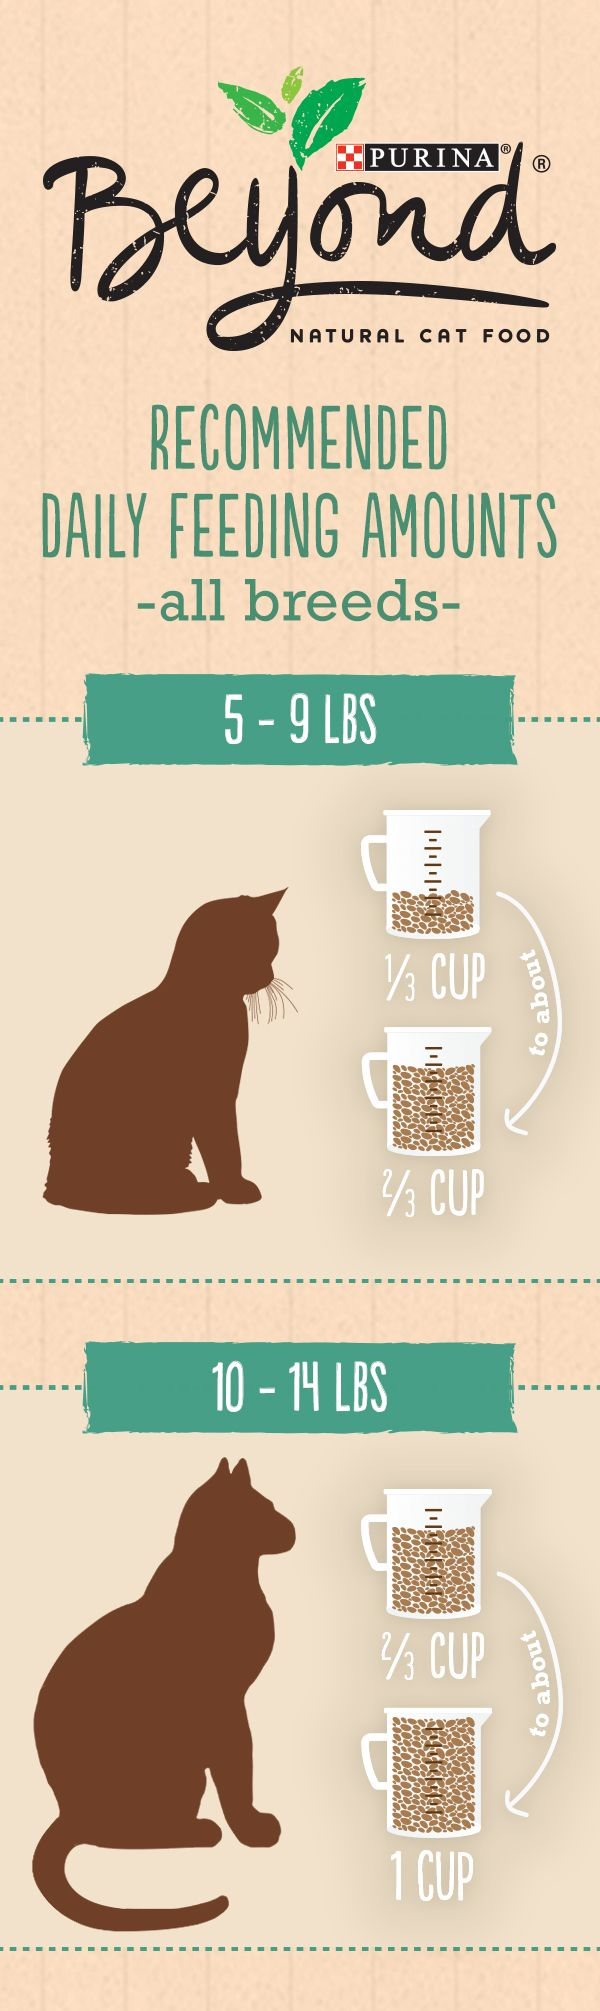 Healthy cat food feeding amounts for Beyond Natural Dry Pet Food: start with this guide, but keep in mind that your cat's needs may change based on age, activity level and environment. If you're switching foods, allow 7-10 days for a full transition, and be sure to keep clean, fresh water available for your cat at all times.